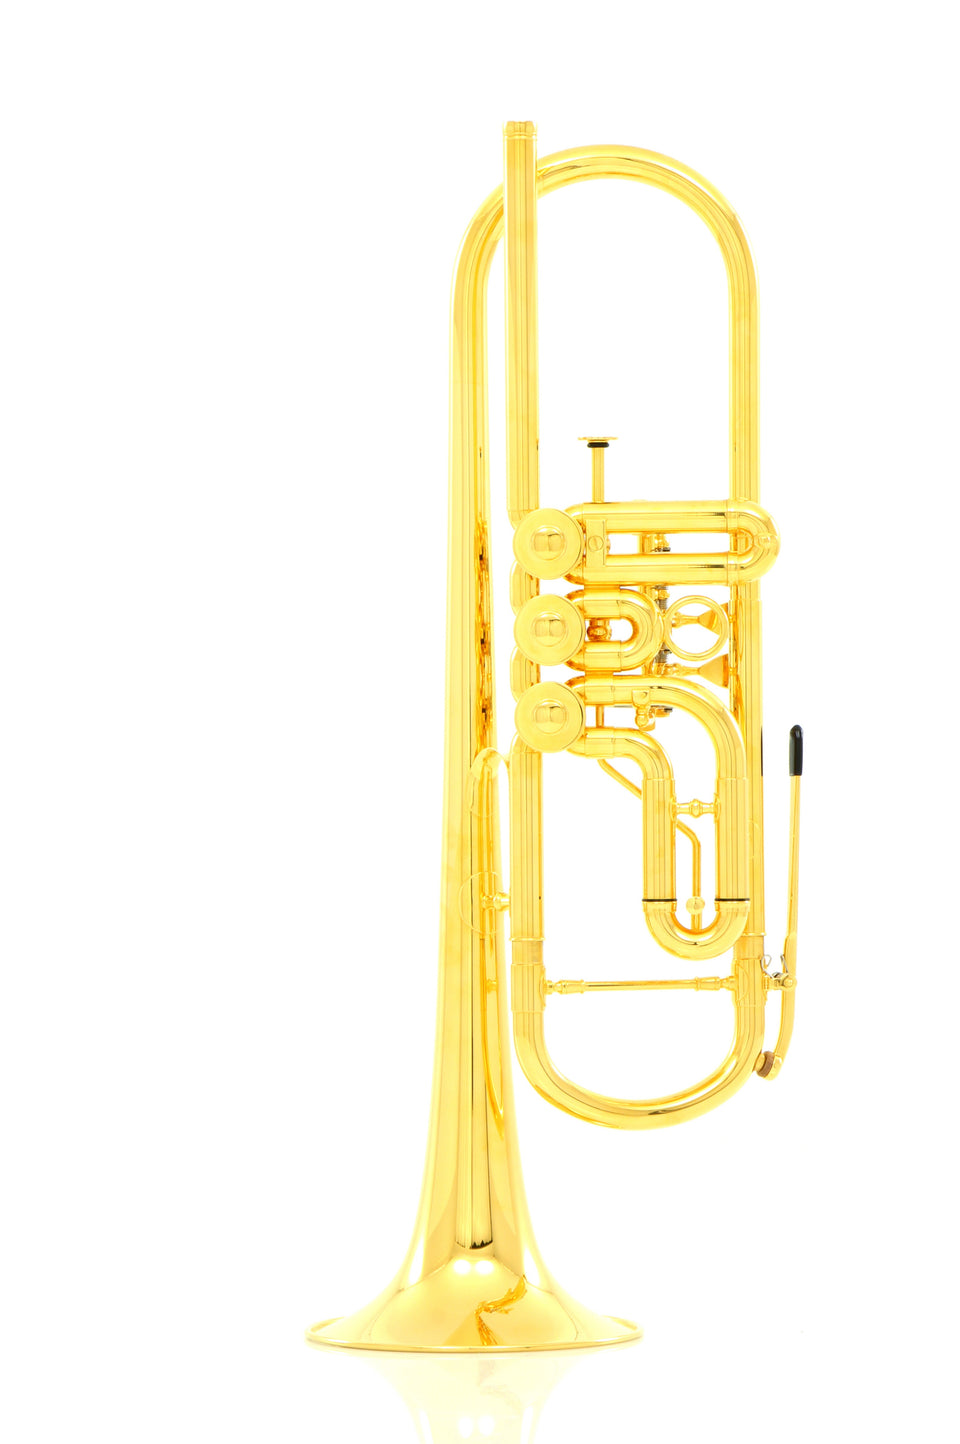 Schagerl Berlin Model Gold Plated Bᵇ Trumpet